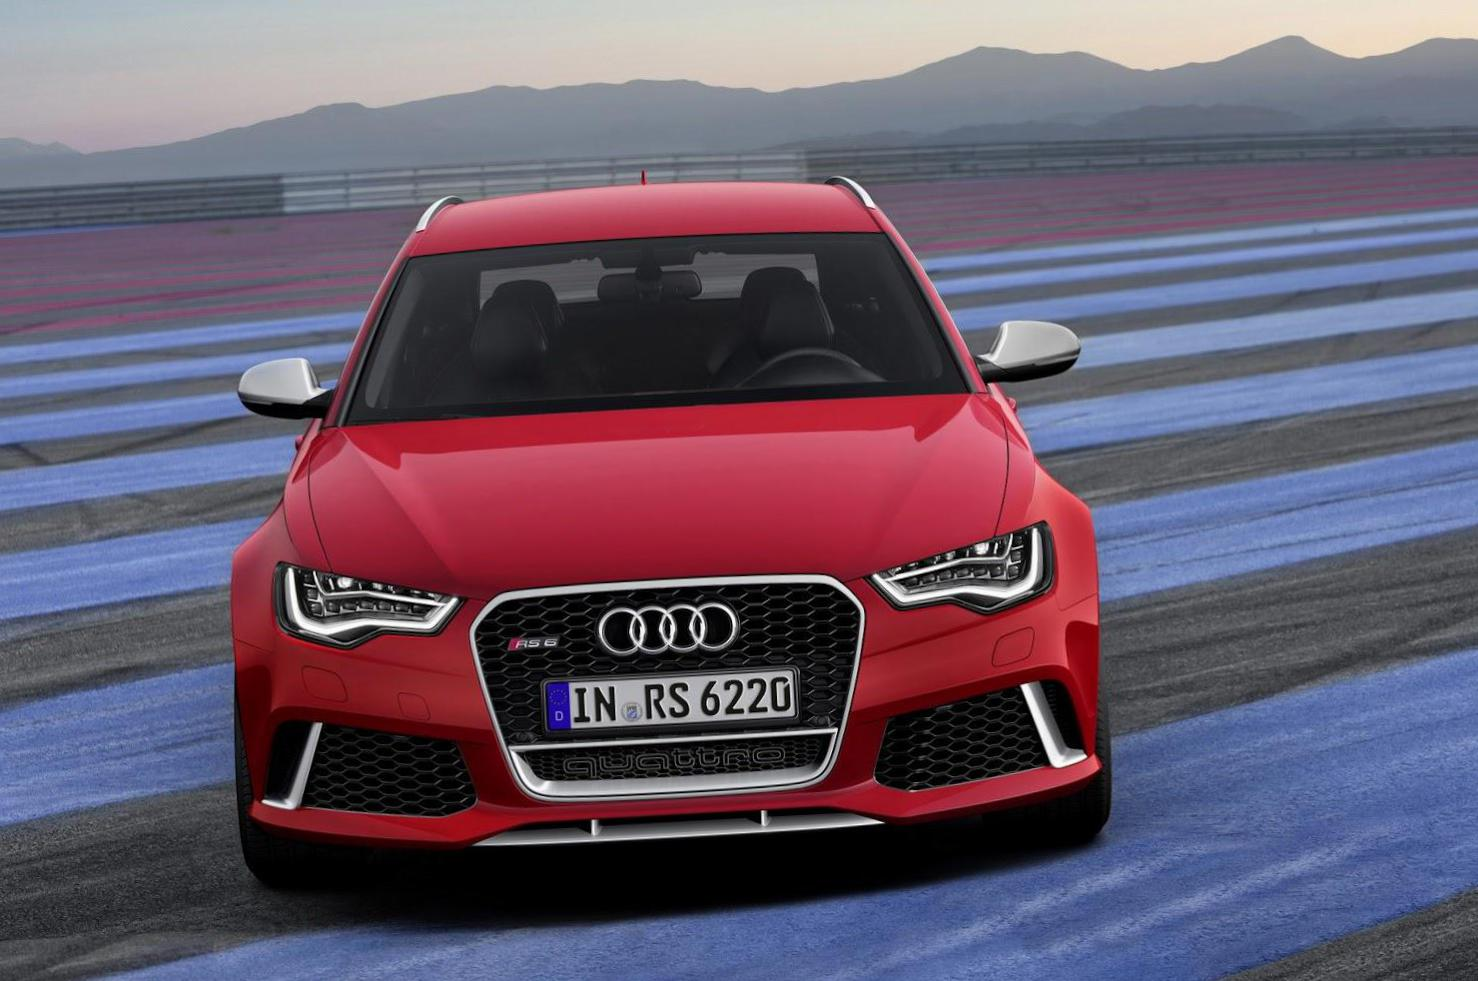 RS6 Avant Audi configuration hatchback